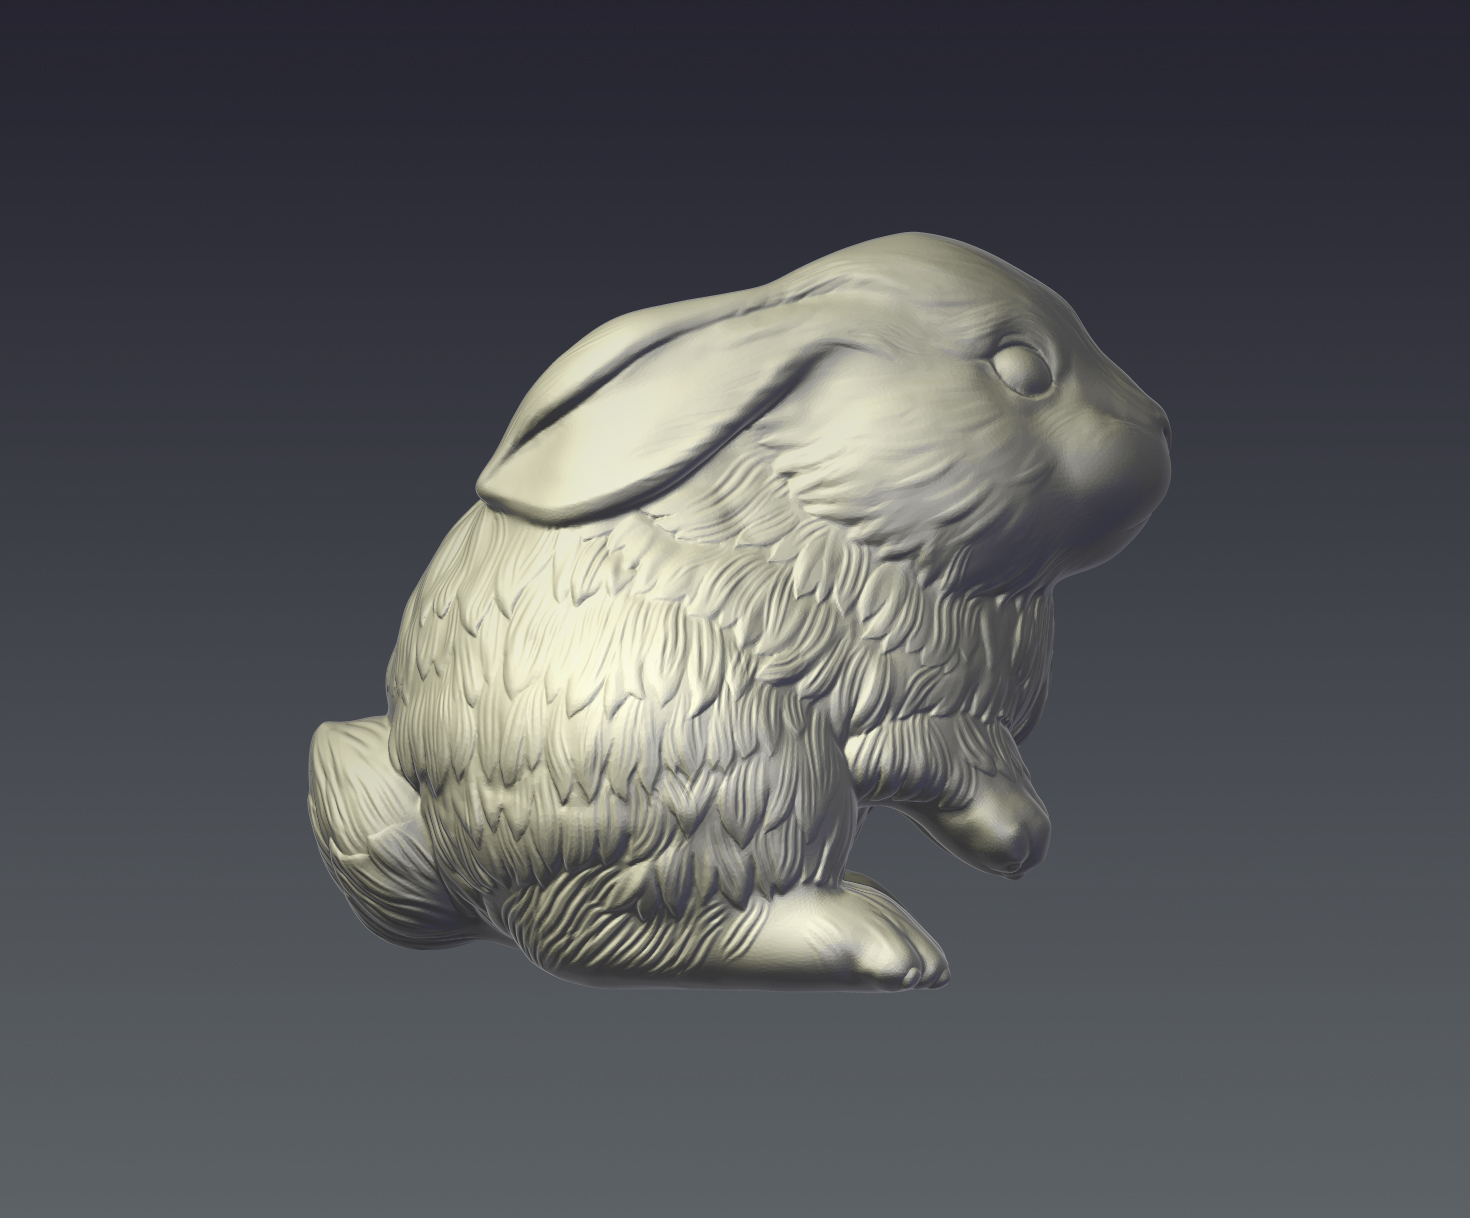 3d models download for printing